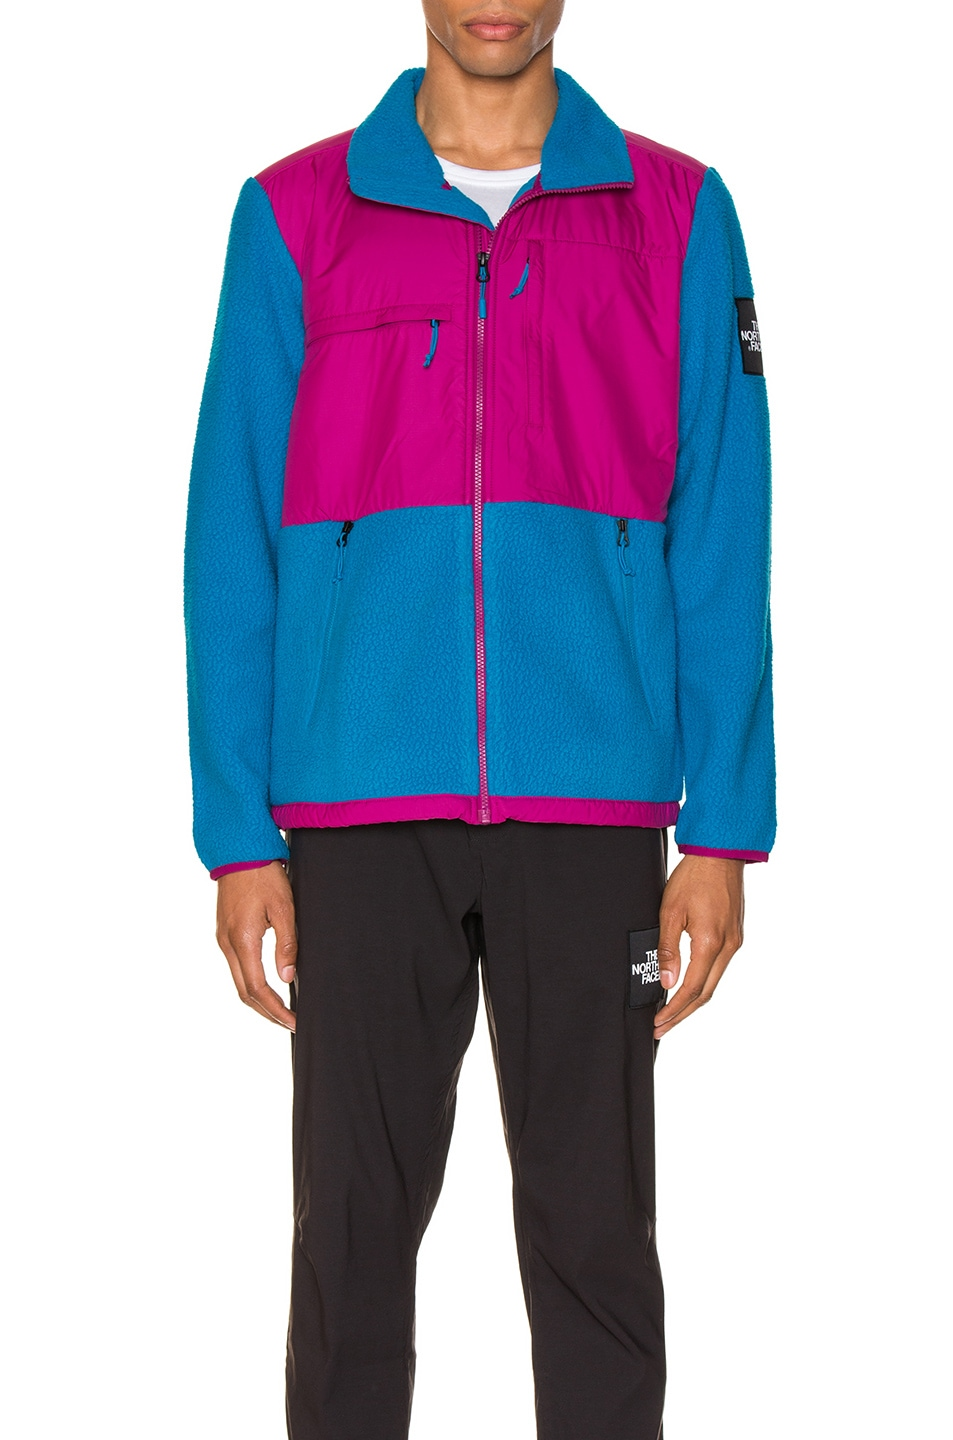 Image 2 of The North Face Black Box Denali Fleece Jacket in Acoustic Blue & Festival Pink